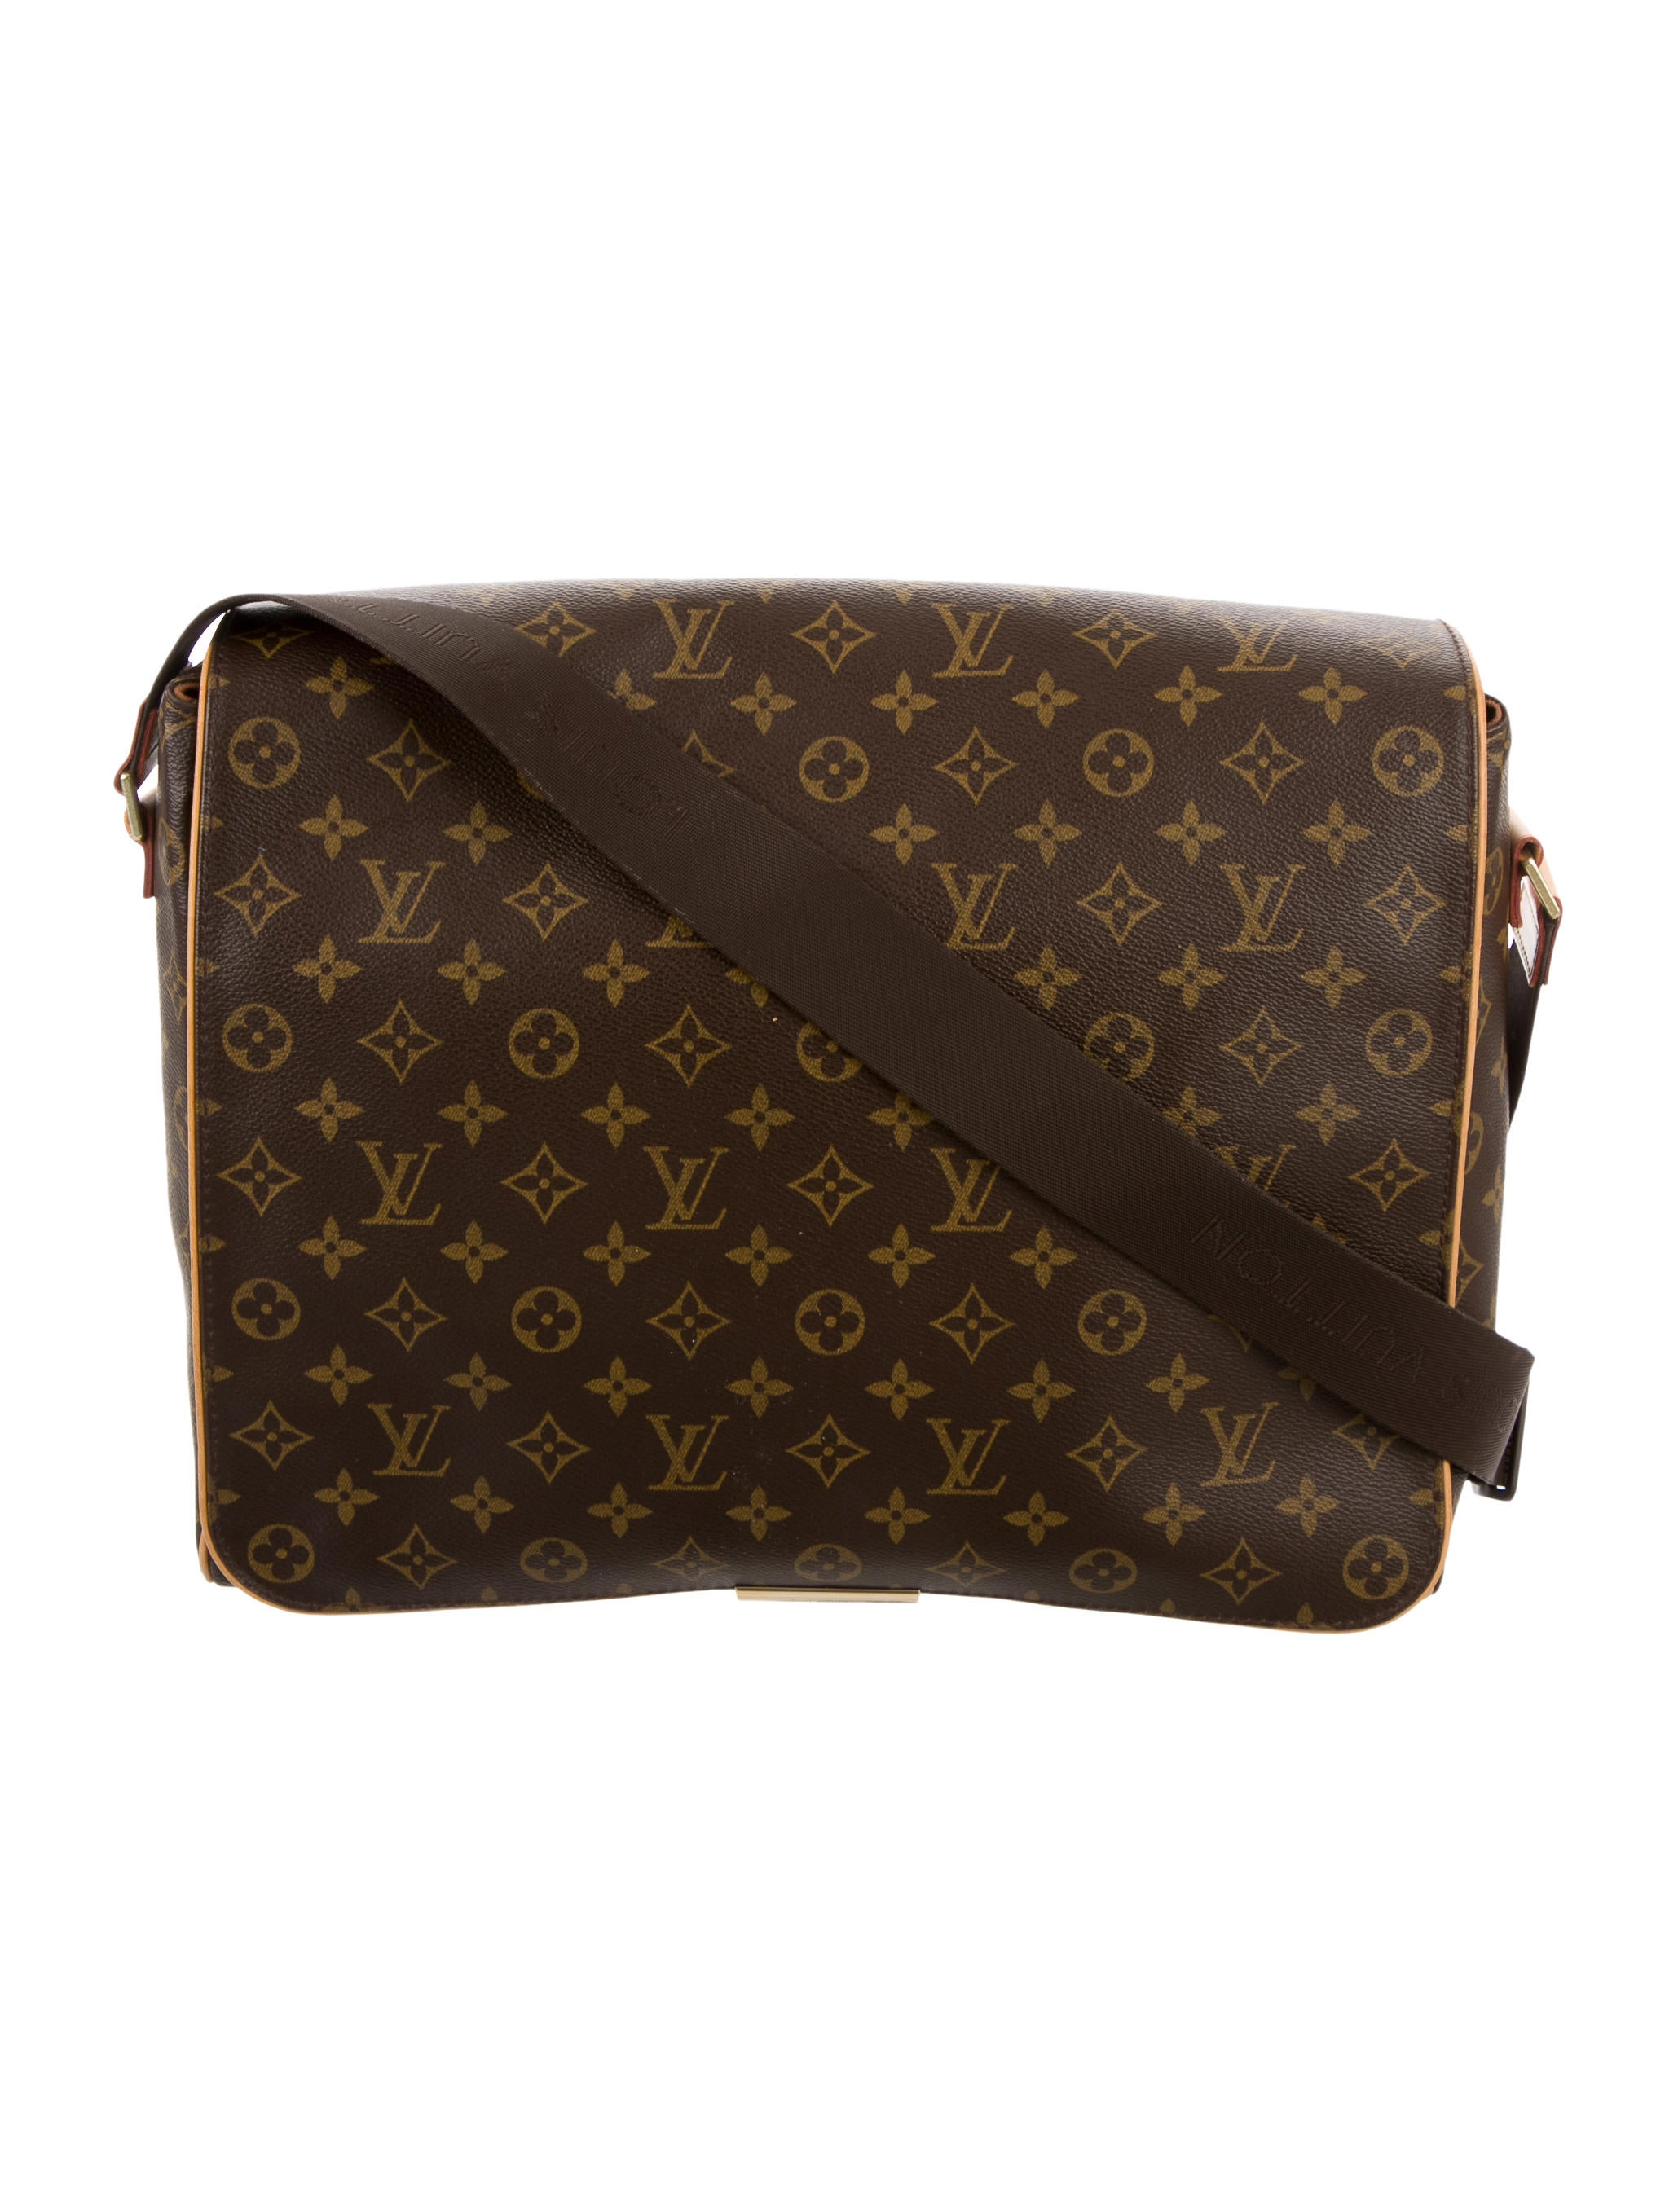 Lastest Louis Vuitton Women/menu0026#39;s Messenger Bag Handbags For Sale